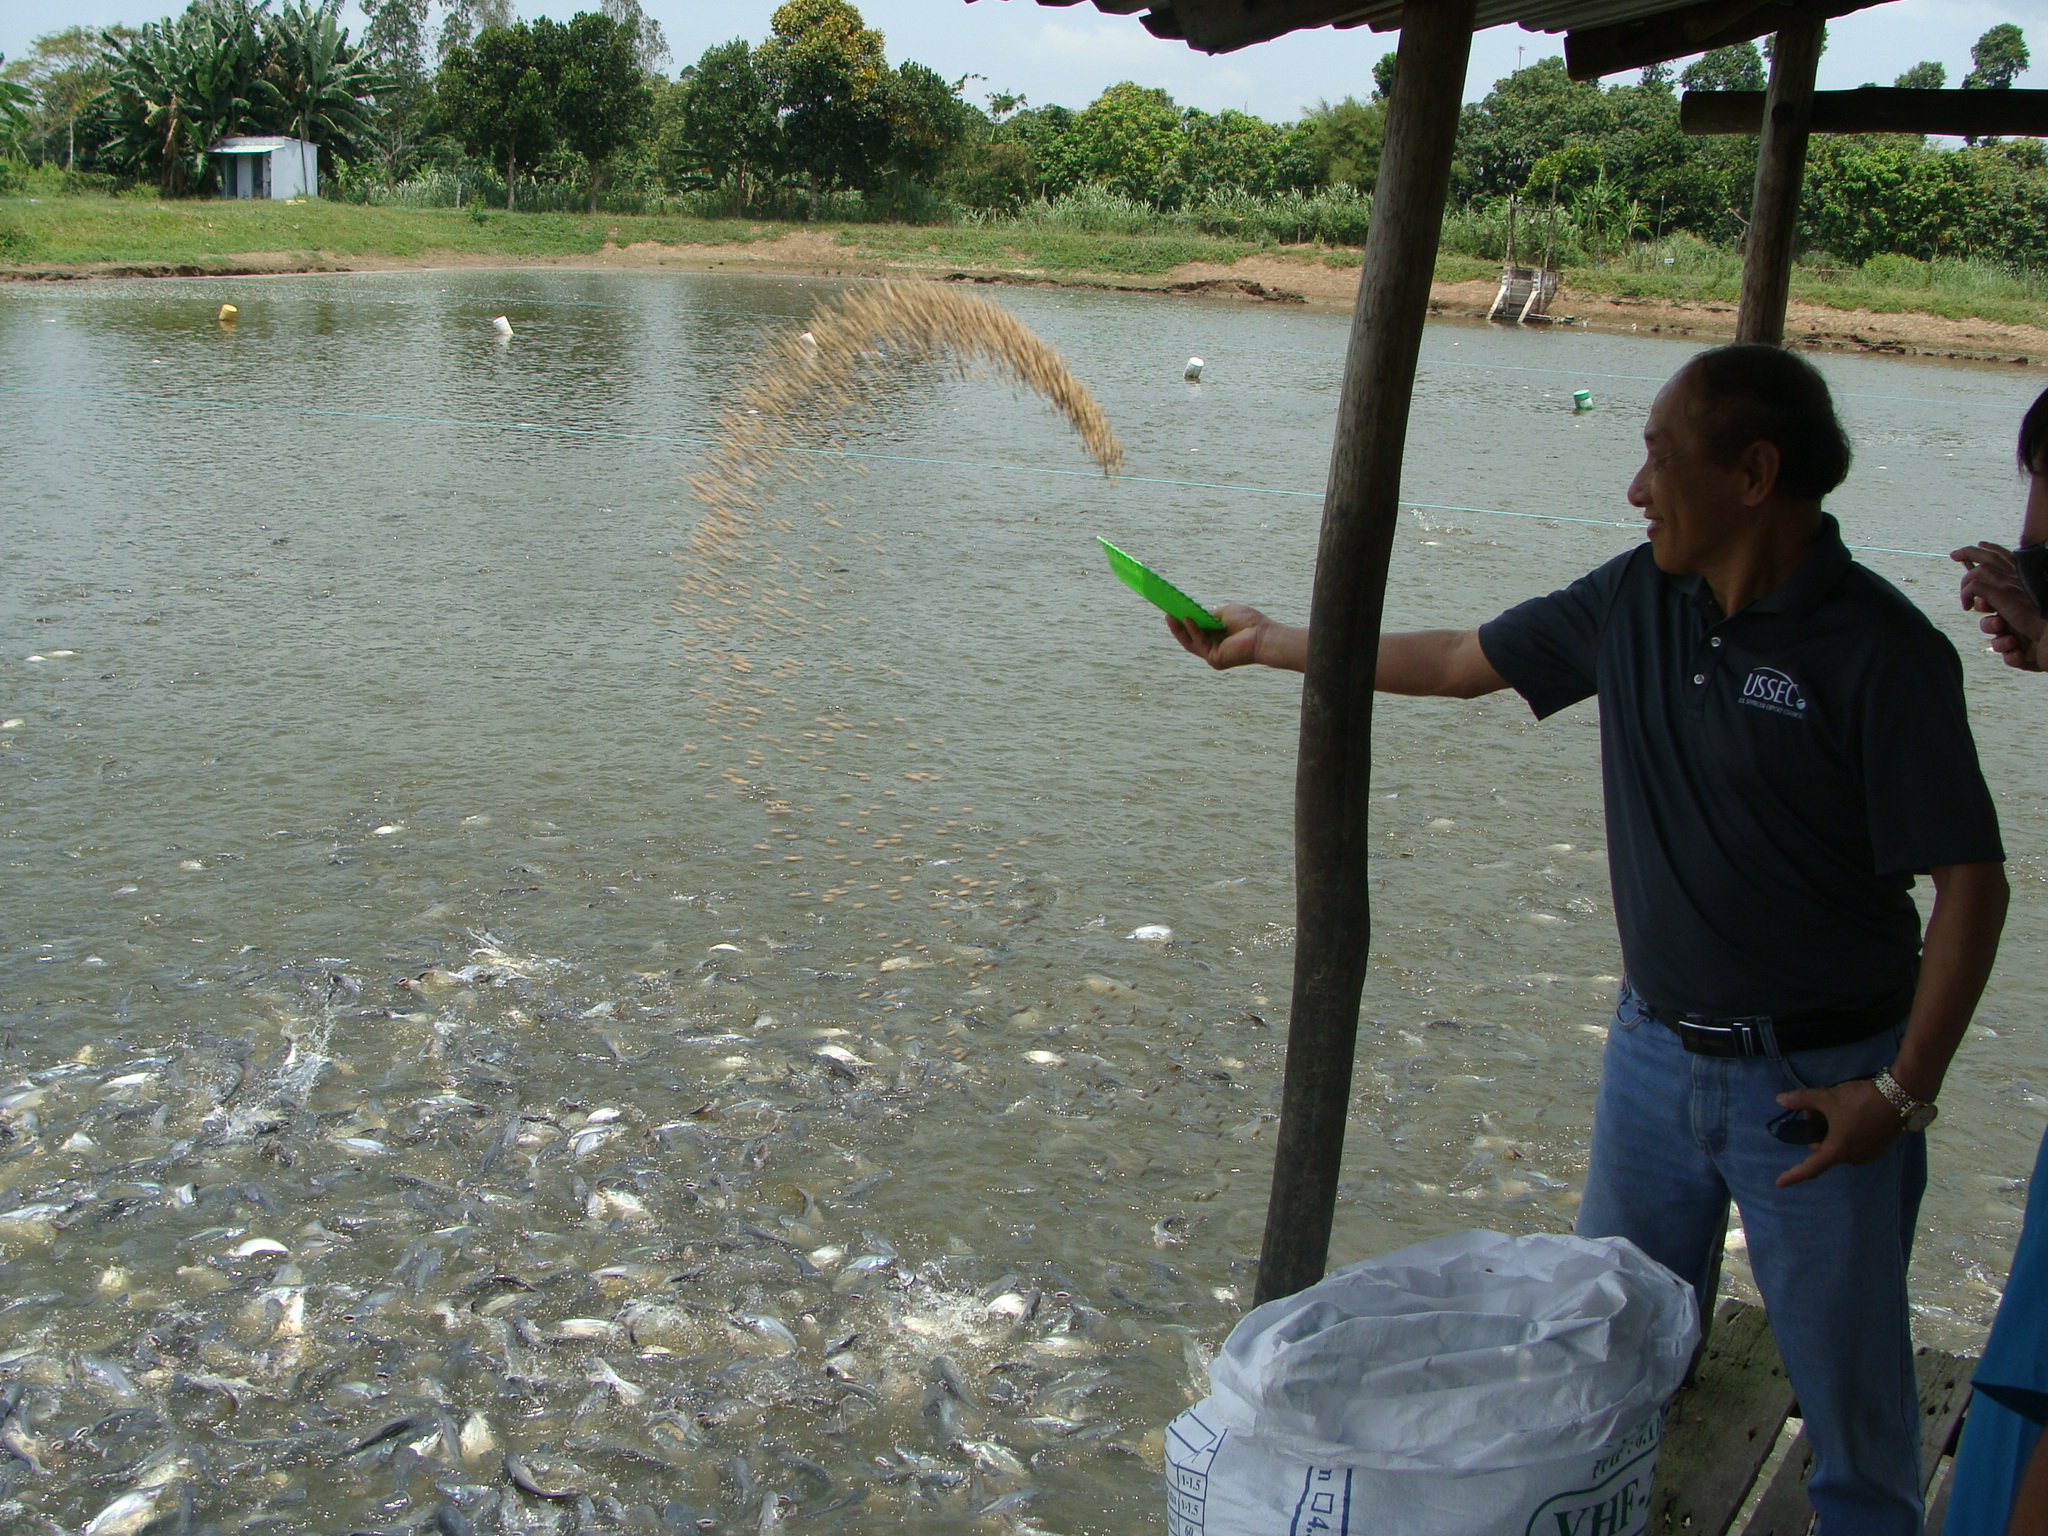 Vietnam Feeds Fish U.S. Soy